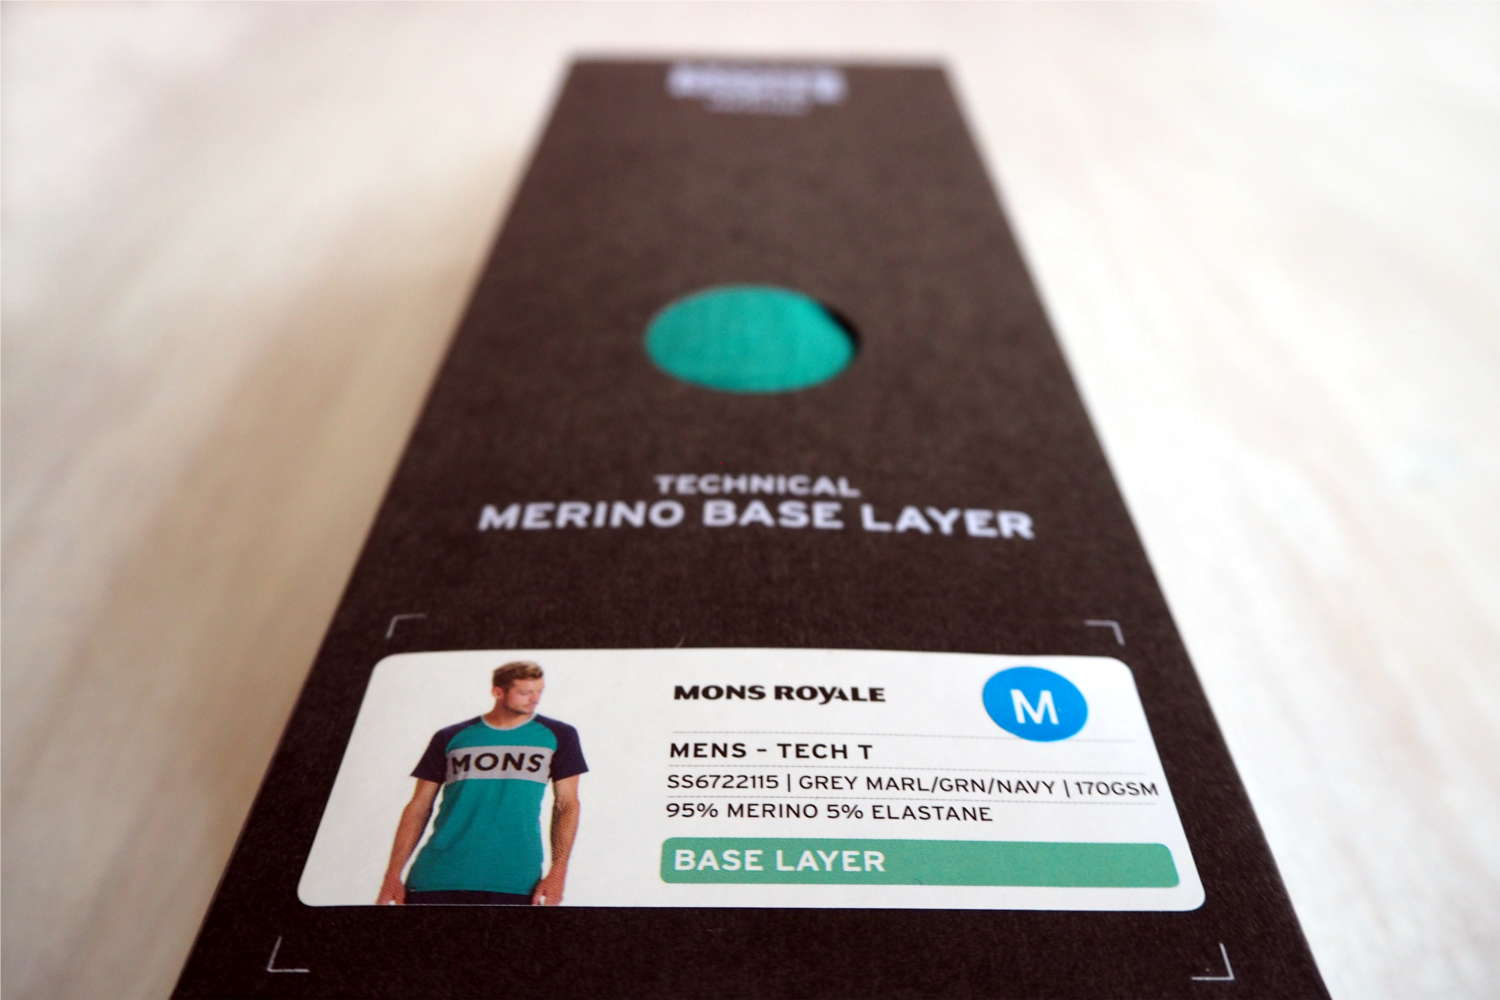 Mons Royale Test Merino Shirt